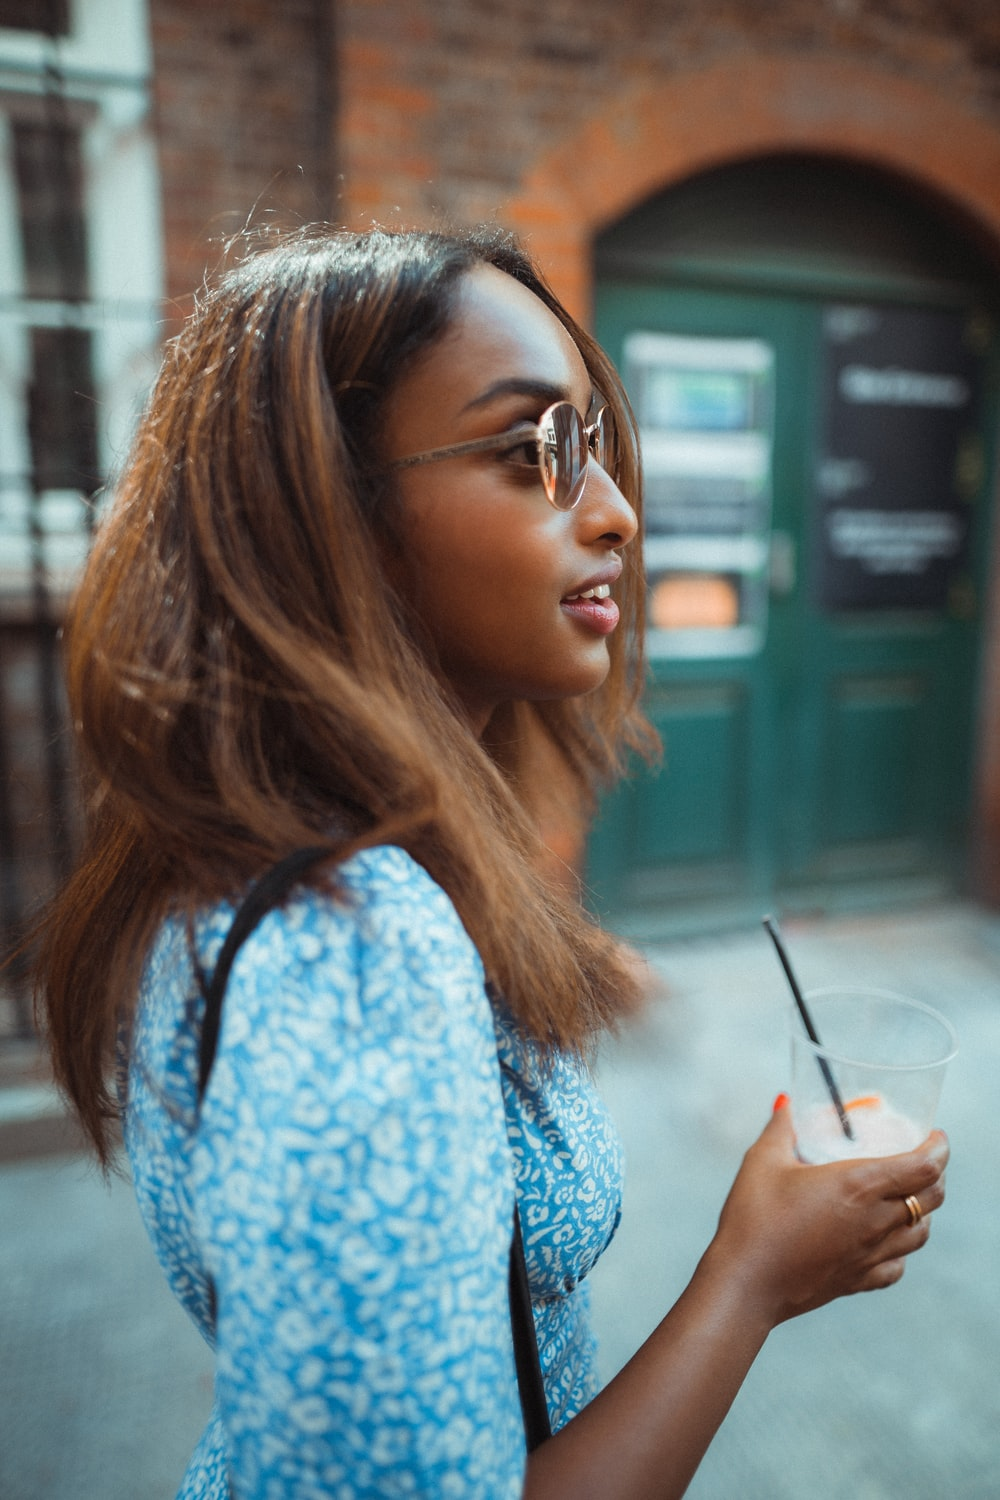 woman in blue and white floral shirt holding white disposable cup